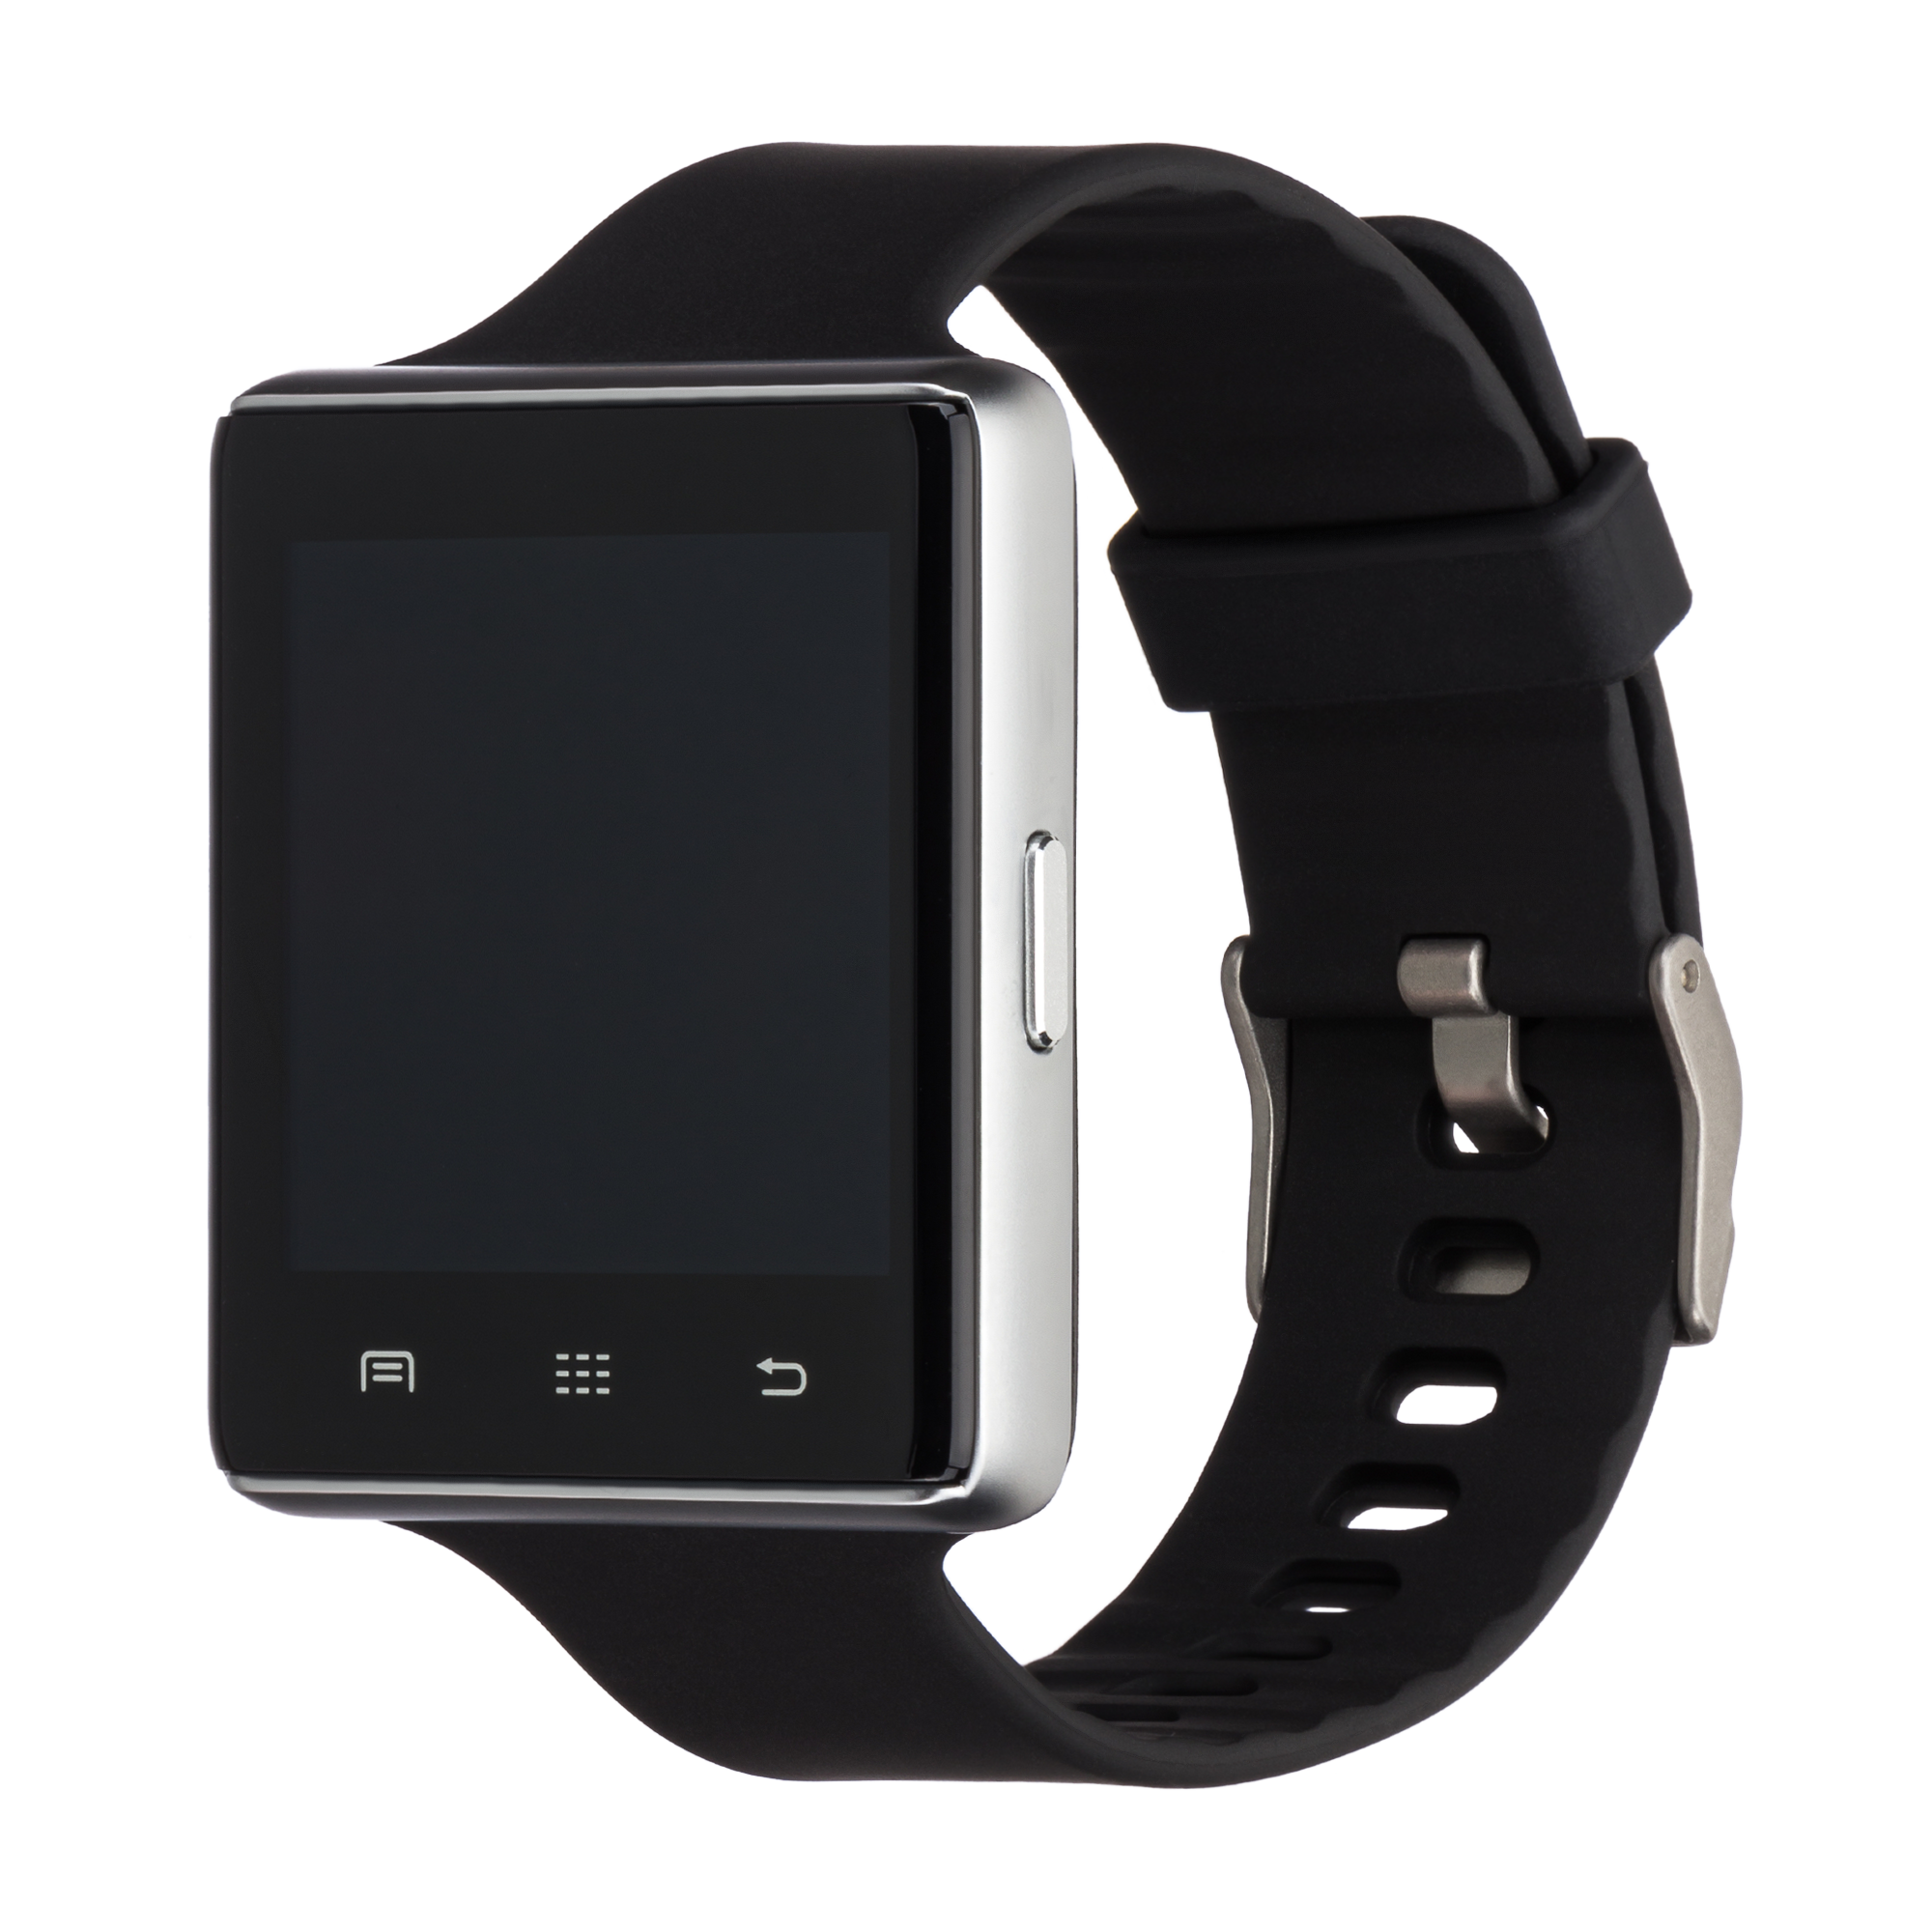 Smartwatch product photo